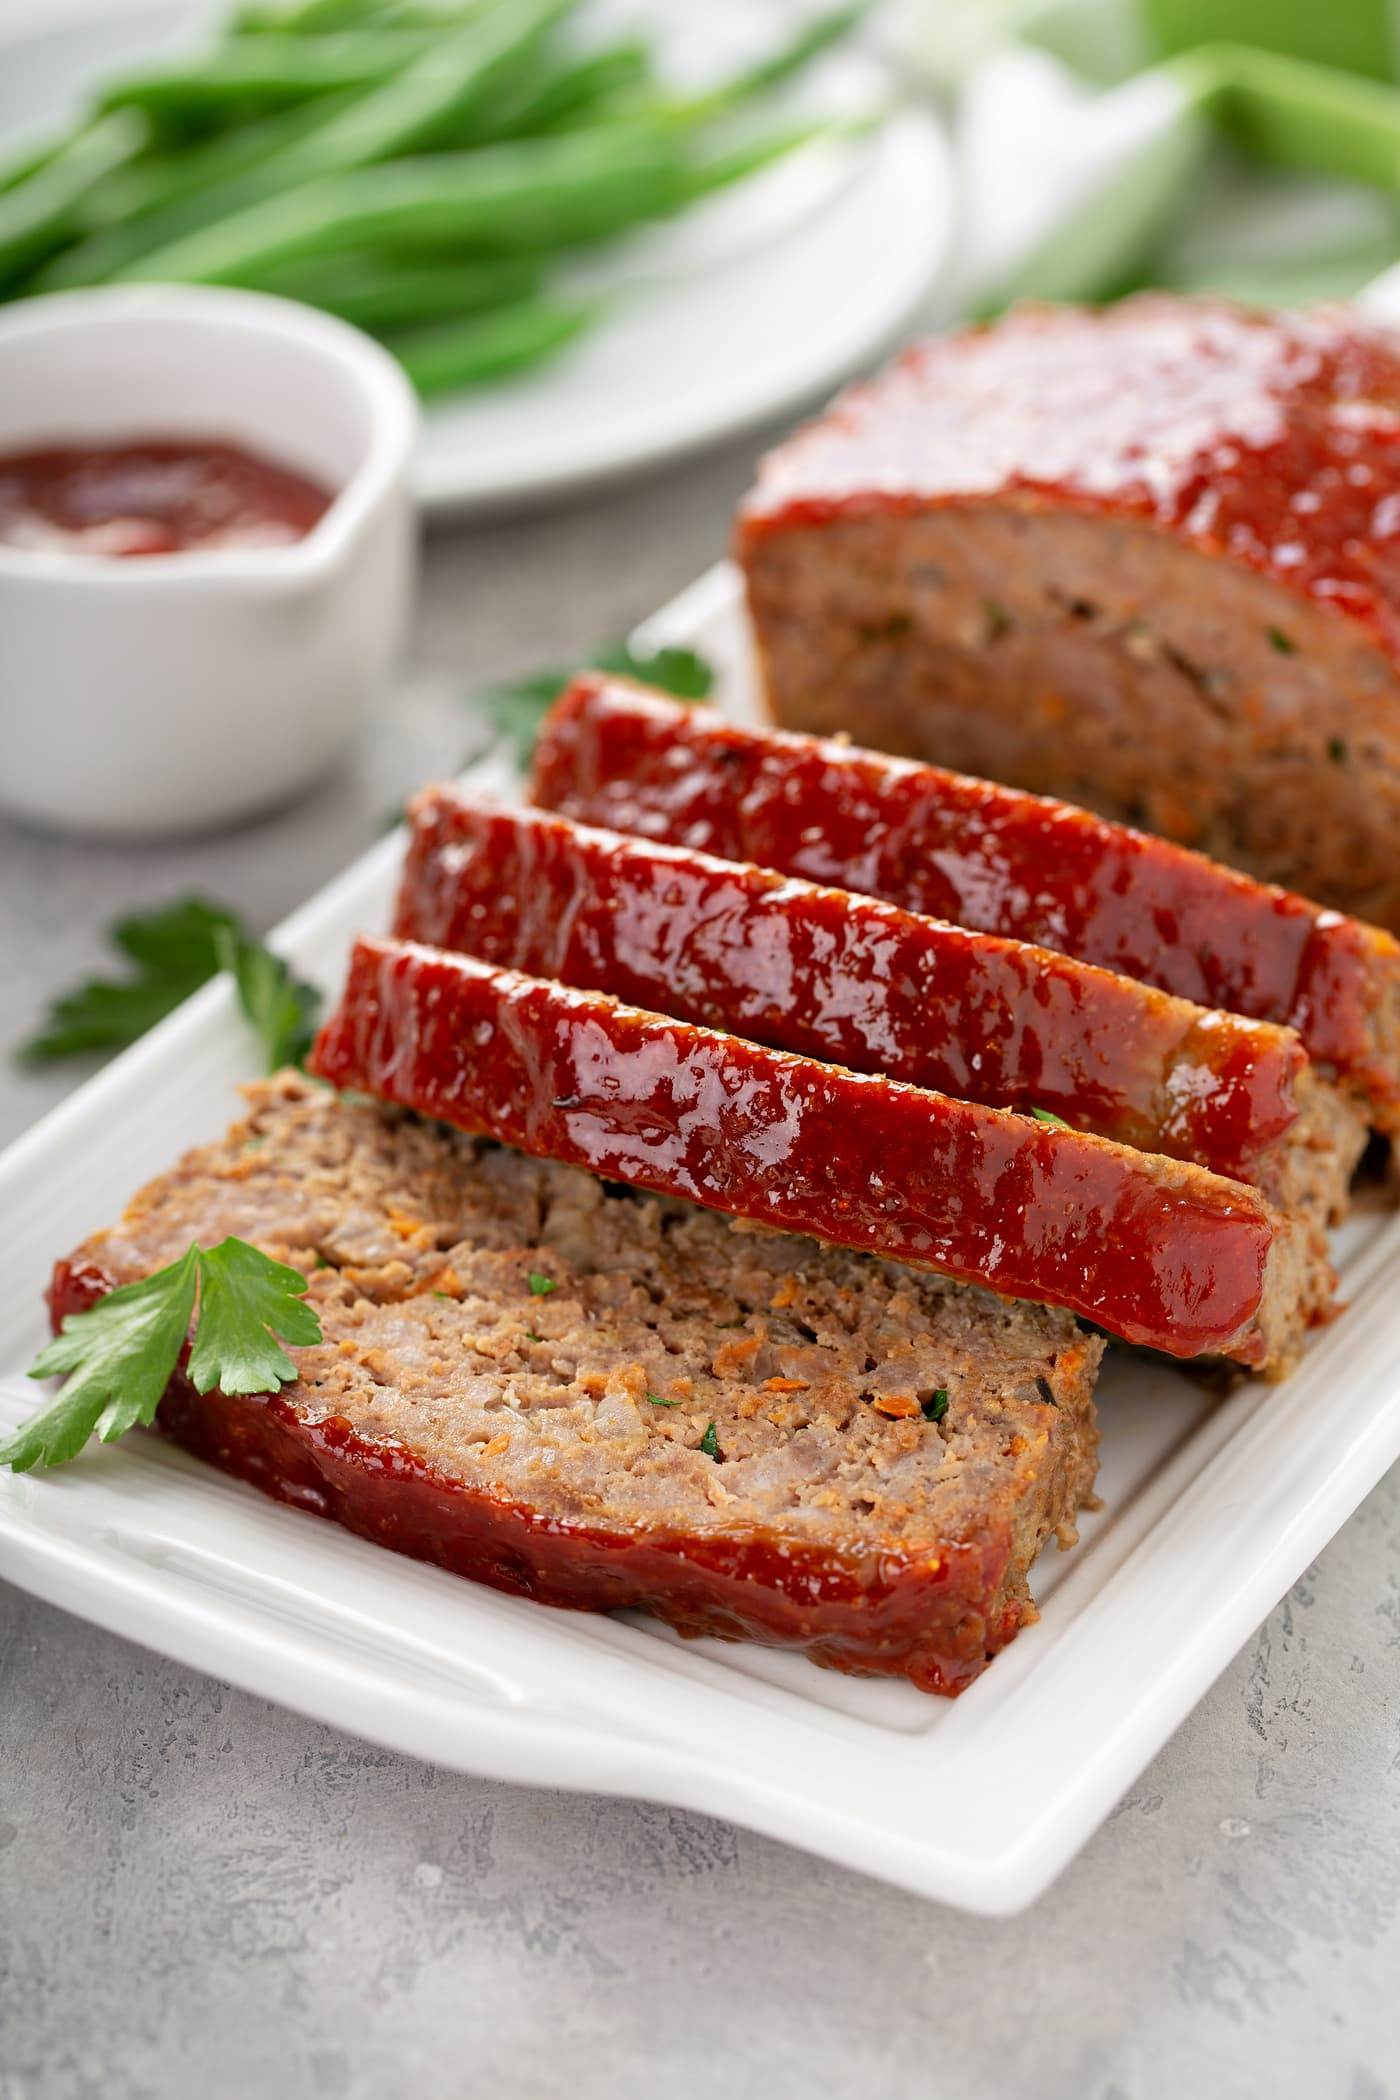 A tray with a partially sliced meatloaf. A small container of glaze sits next to the meatloaf and a plate of green beans is in the background. There are parsley leaves sprinkled around.